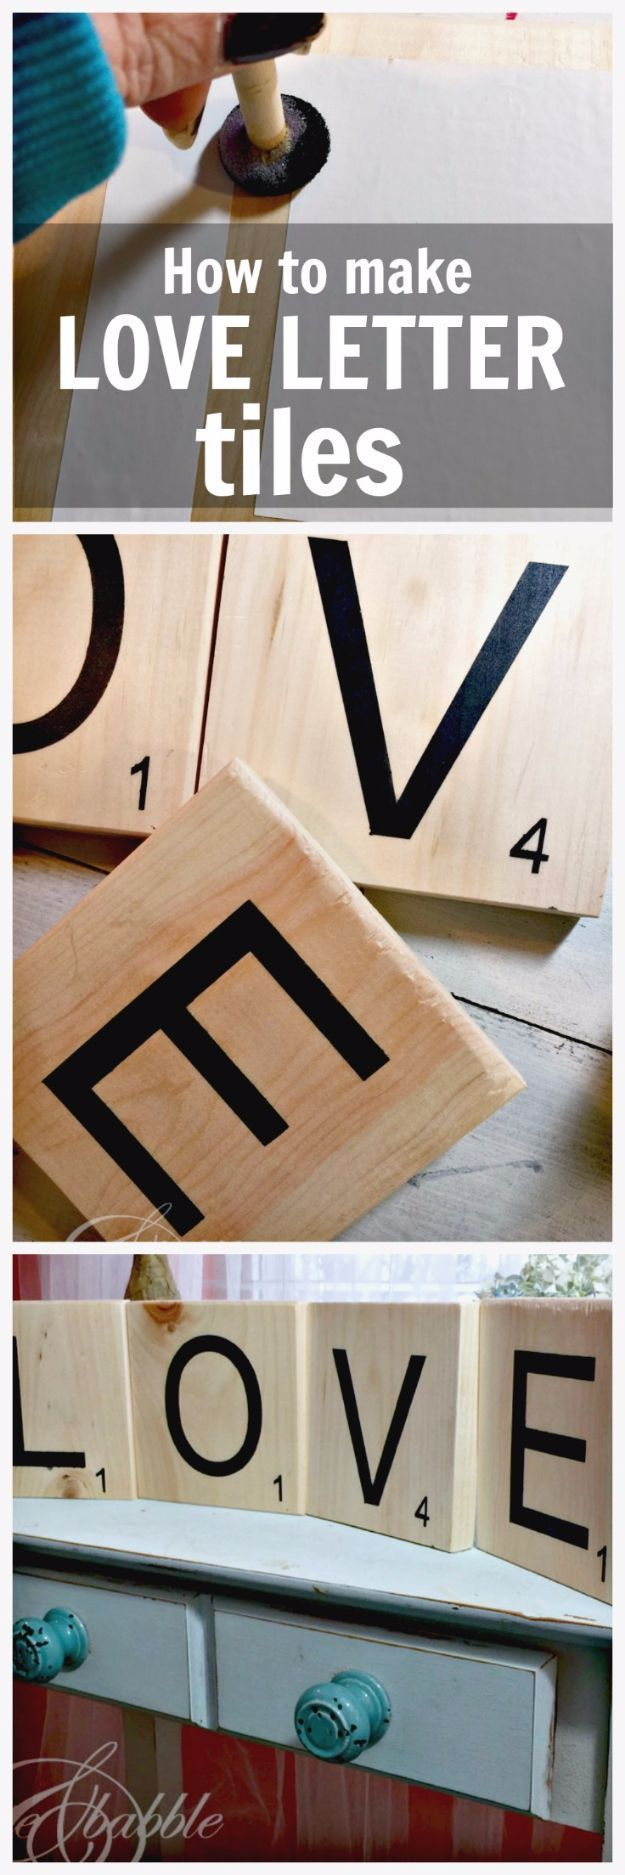 DIY Wall Letters and Initals Wall Art - DIY Love Scrabble Pieces - Cool Architectural Letter Projects for Living Room Decor, Bedroom Ideas. Girl or Boy Nursery. Paint, Glitter, String Art, Easy Cardboard and Rustic Wooden Ideas http://diyprojectsforteens.com/diy-projects-with-letters-wall